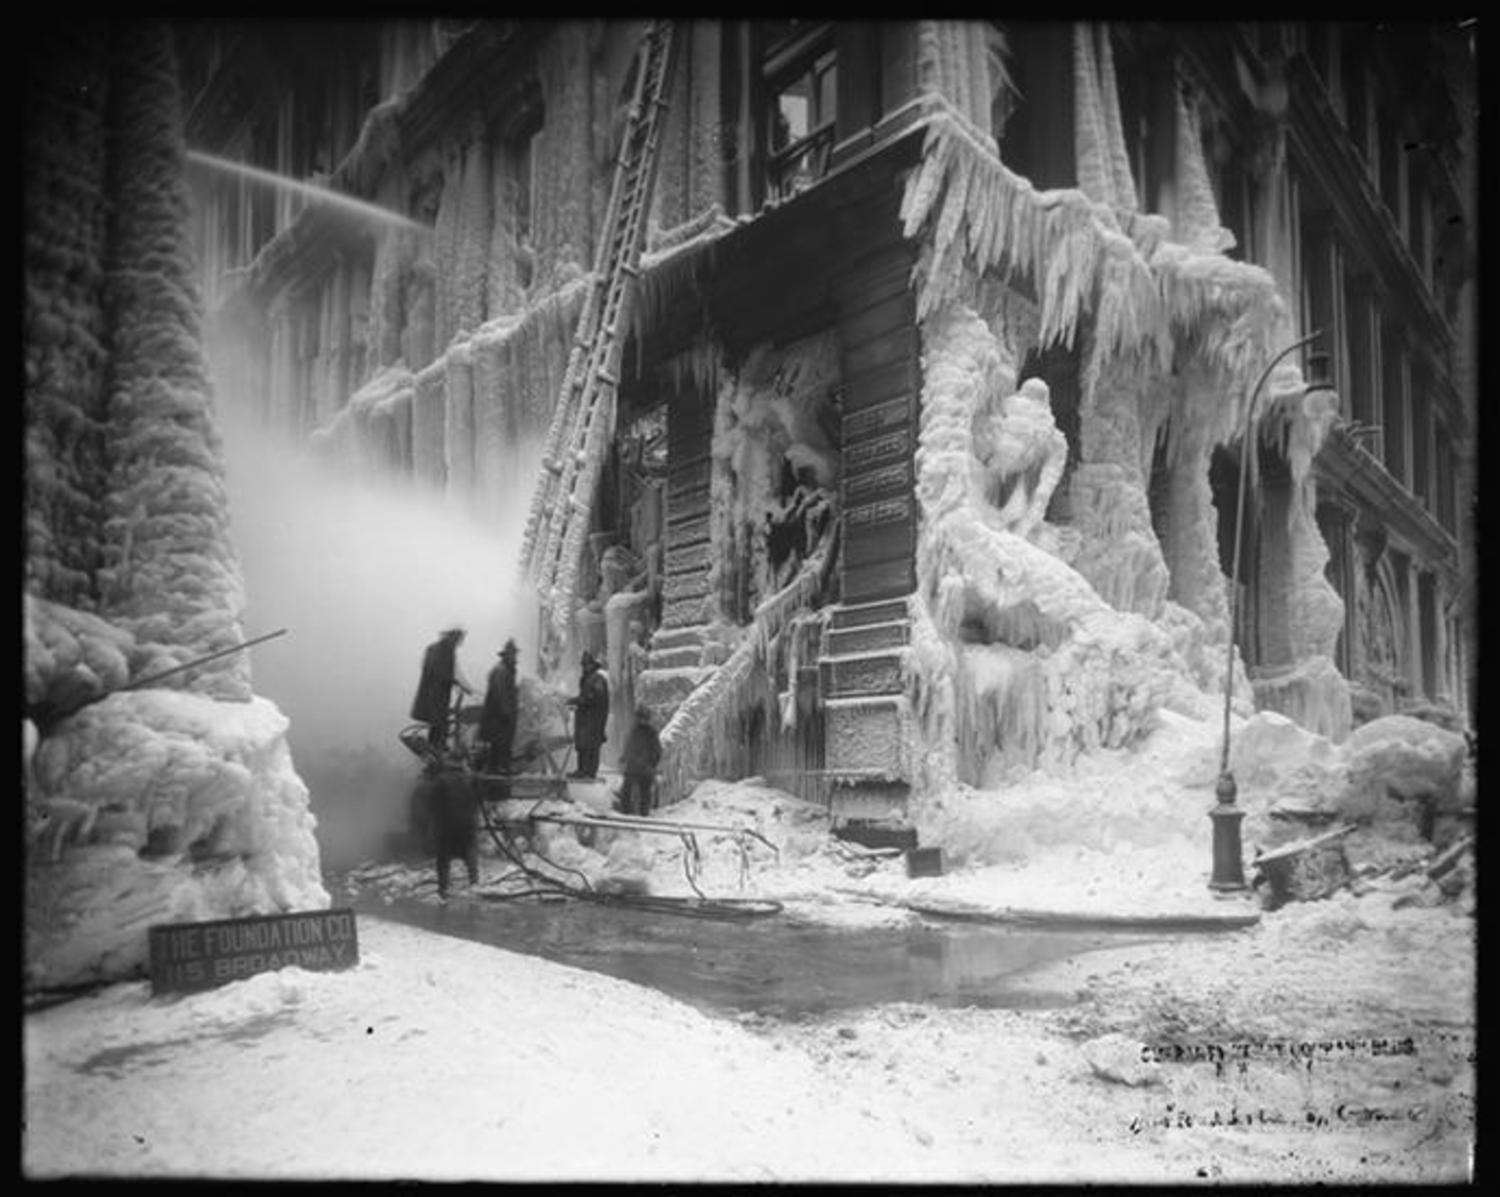 Cedar Street and Broadway. Fire at old Equitable Building Guaranty Trust Company Building, melting ice with steam. 1/12/1912